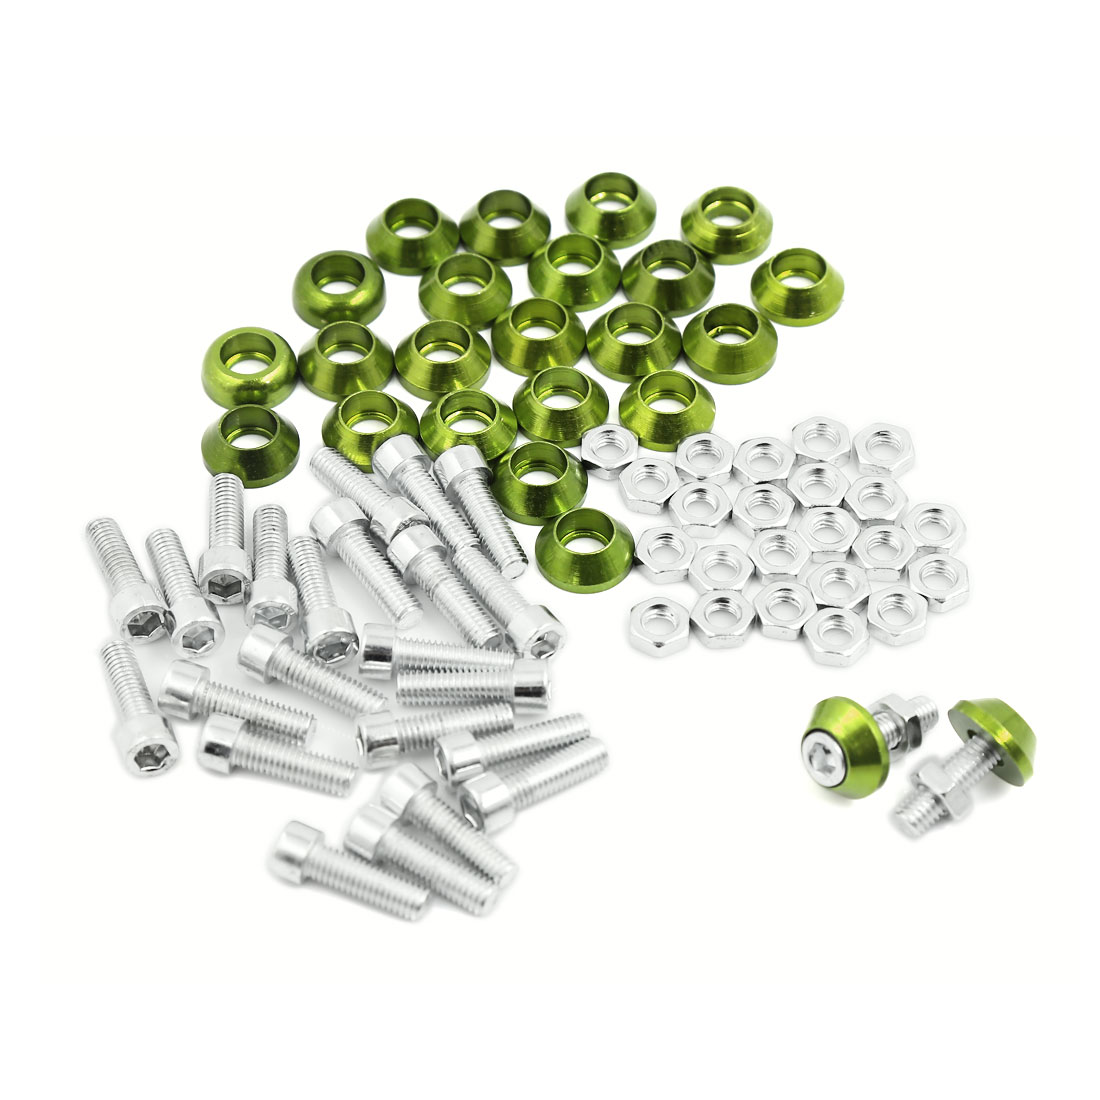 25 Pcs Green Metal Cone Shape License Plate Frame Screw Bolt Caps for Motorcycle